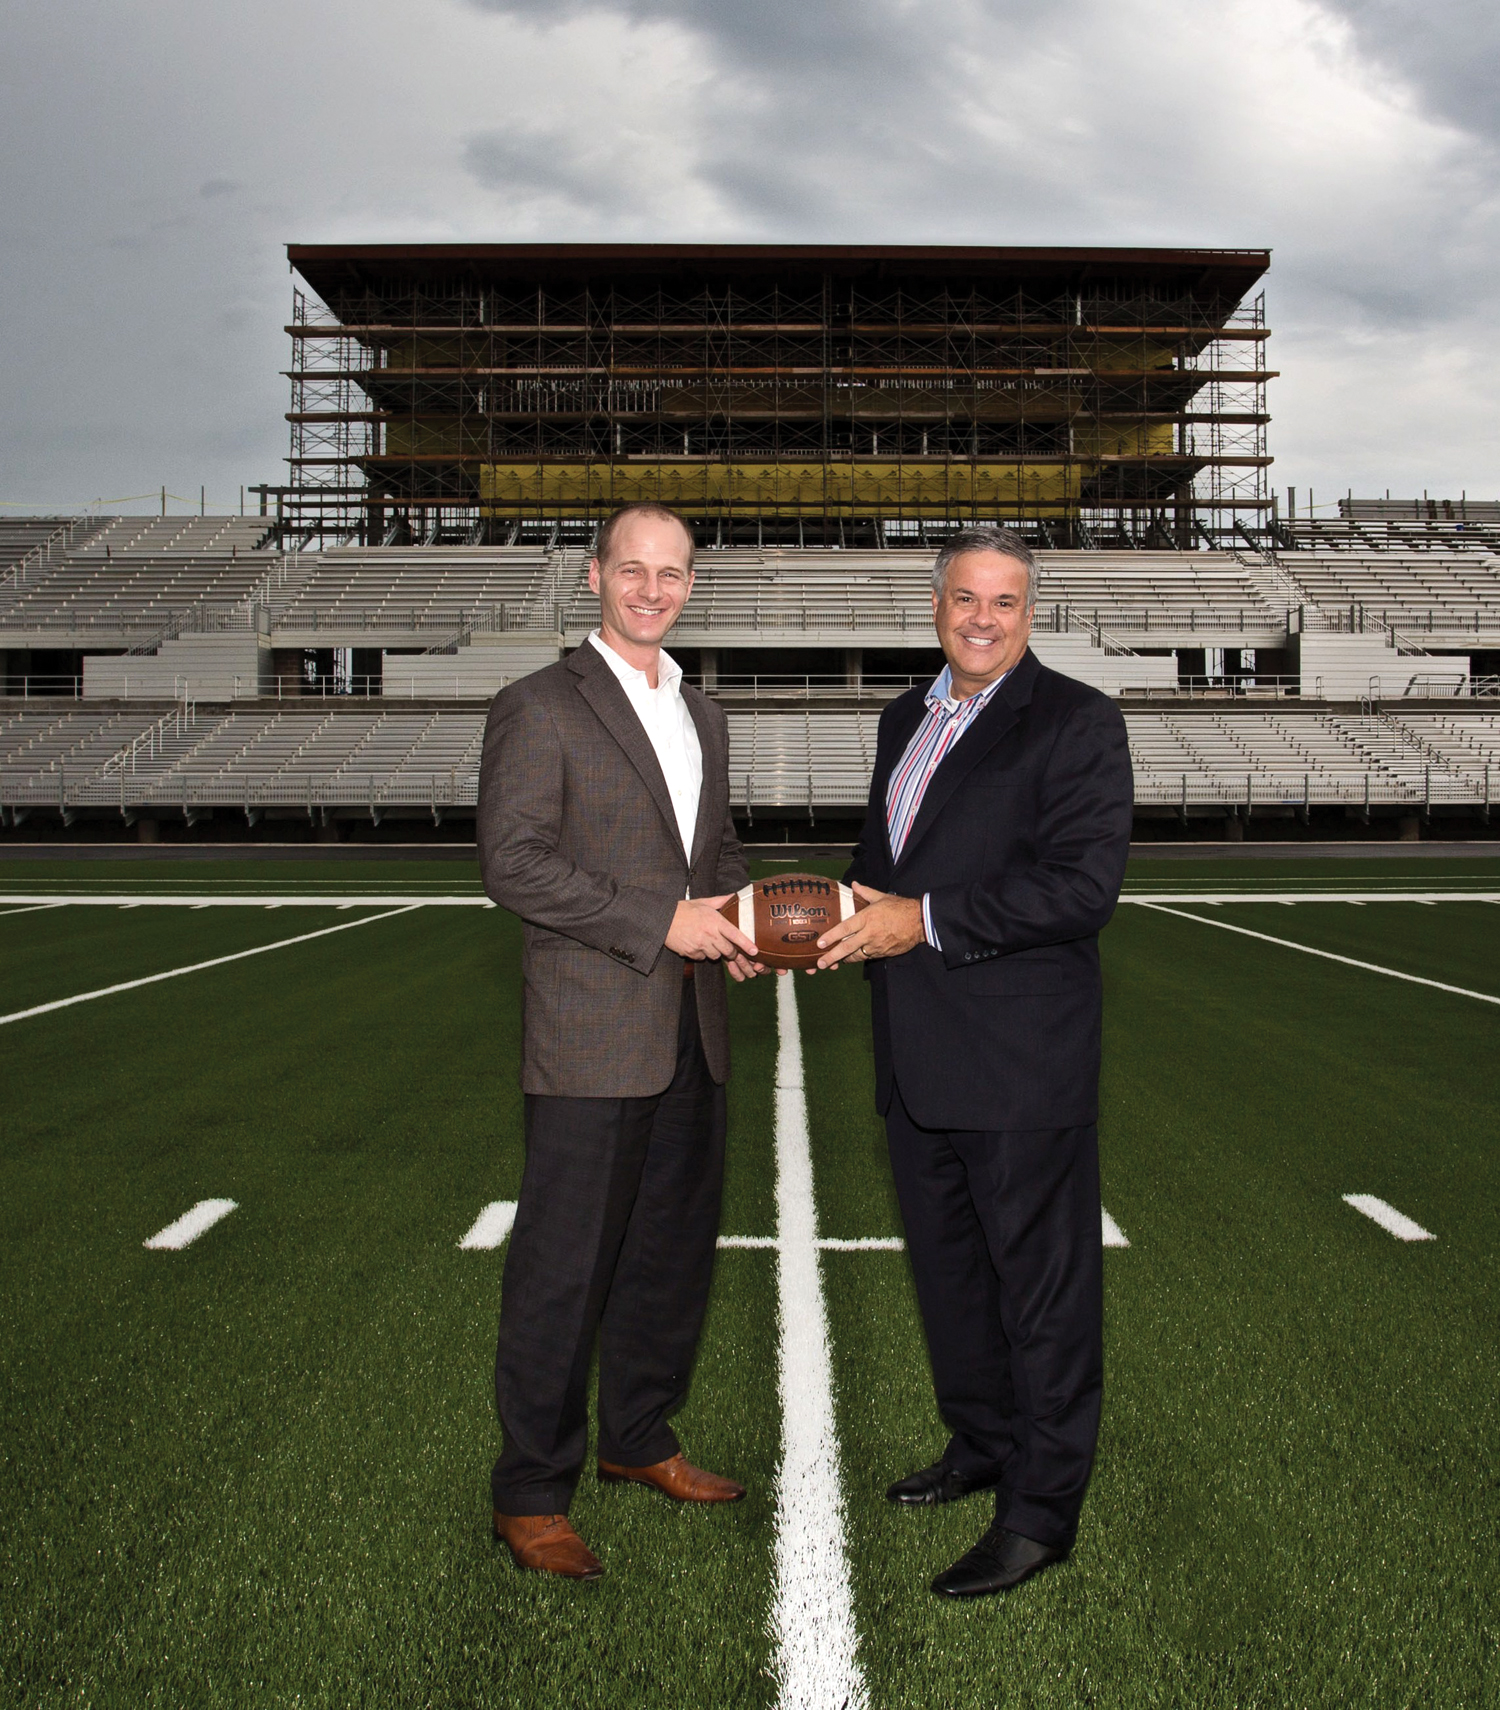 Houston Methodist St. John Hospital CEO Dan Newman, left, gets a look at the new Clear Creek ISD Challenger Columbia Stadium from the 50-yard line with CCISD Superintendent Dr. Greg Smith.